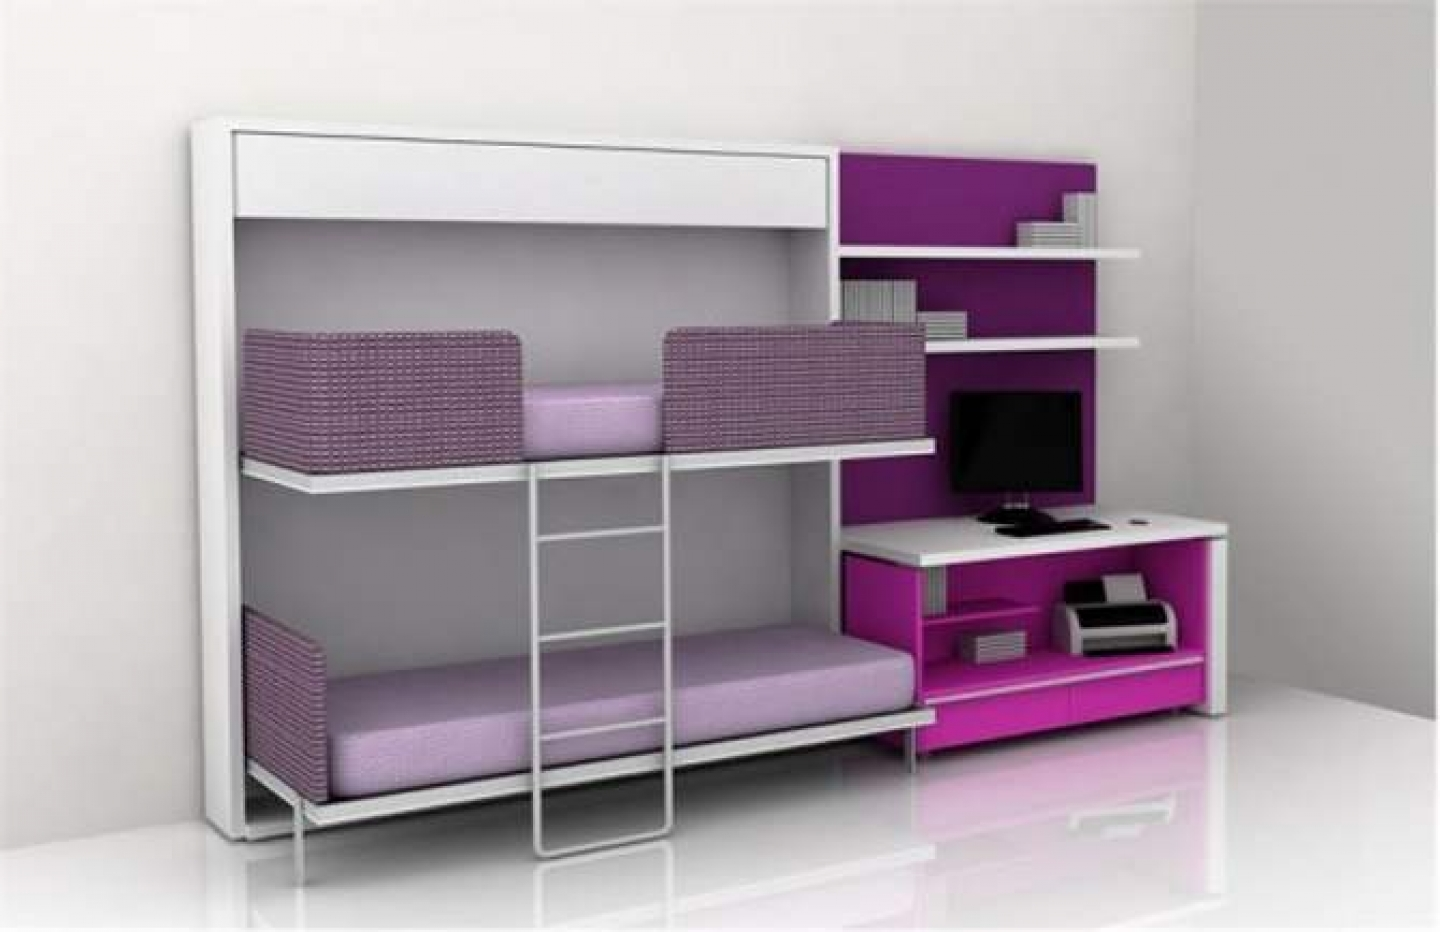 Bunk Beds for Small Rooms | Futuristic Bunk Beds | Loft Beds for Low Ceiling Rooms